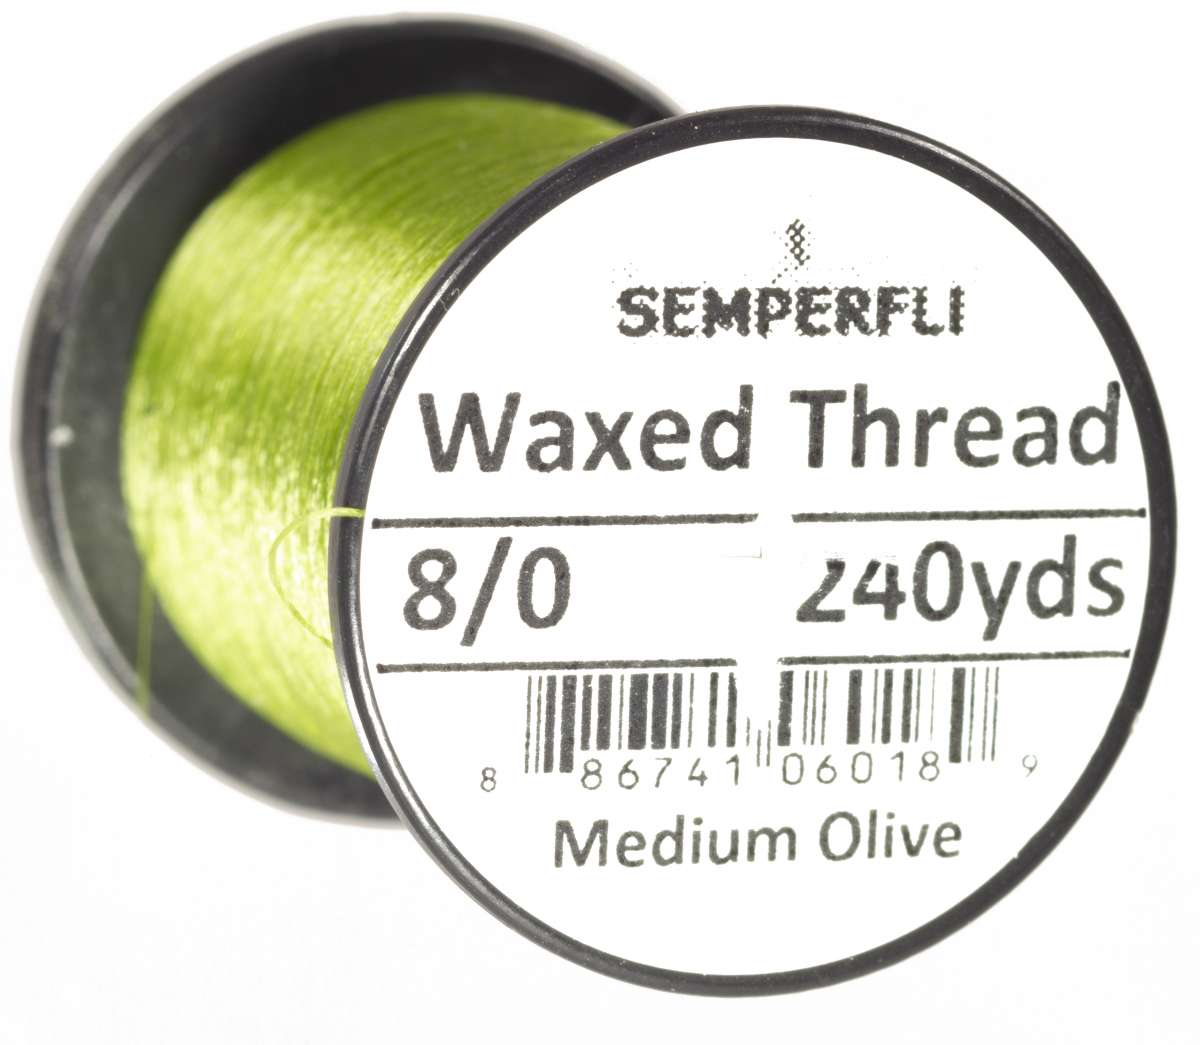 8/0 Classic Waxed Thread Medium Olive Sem-0400-1717